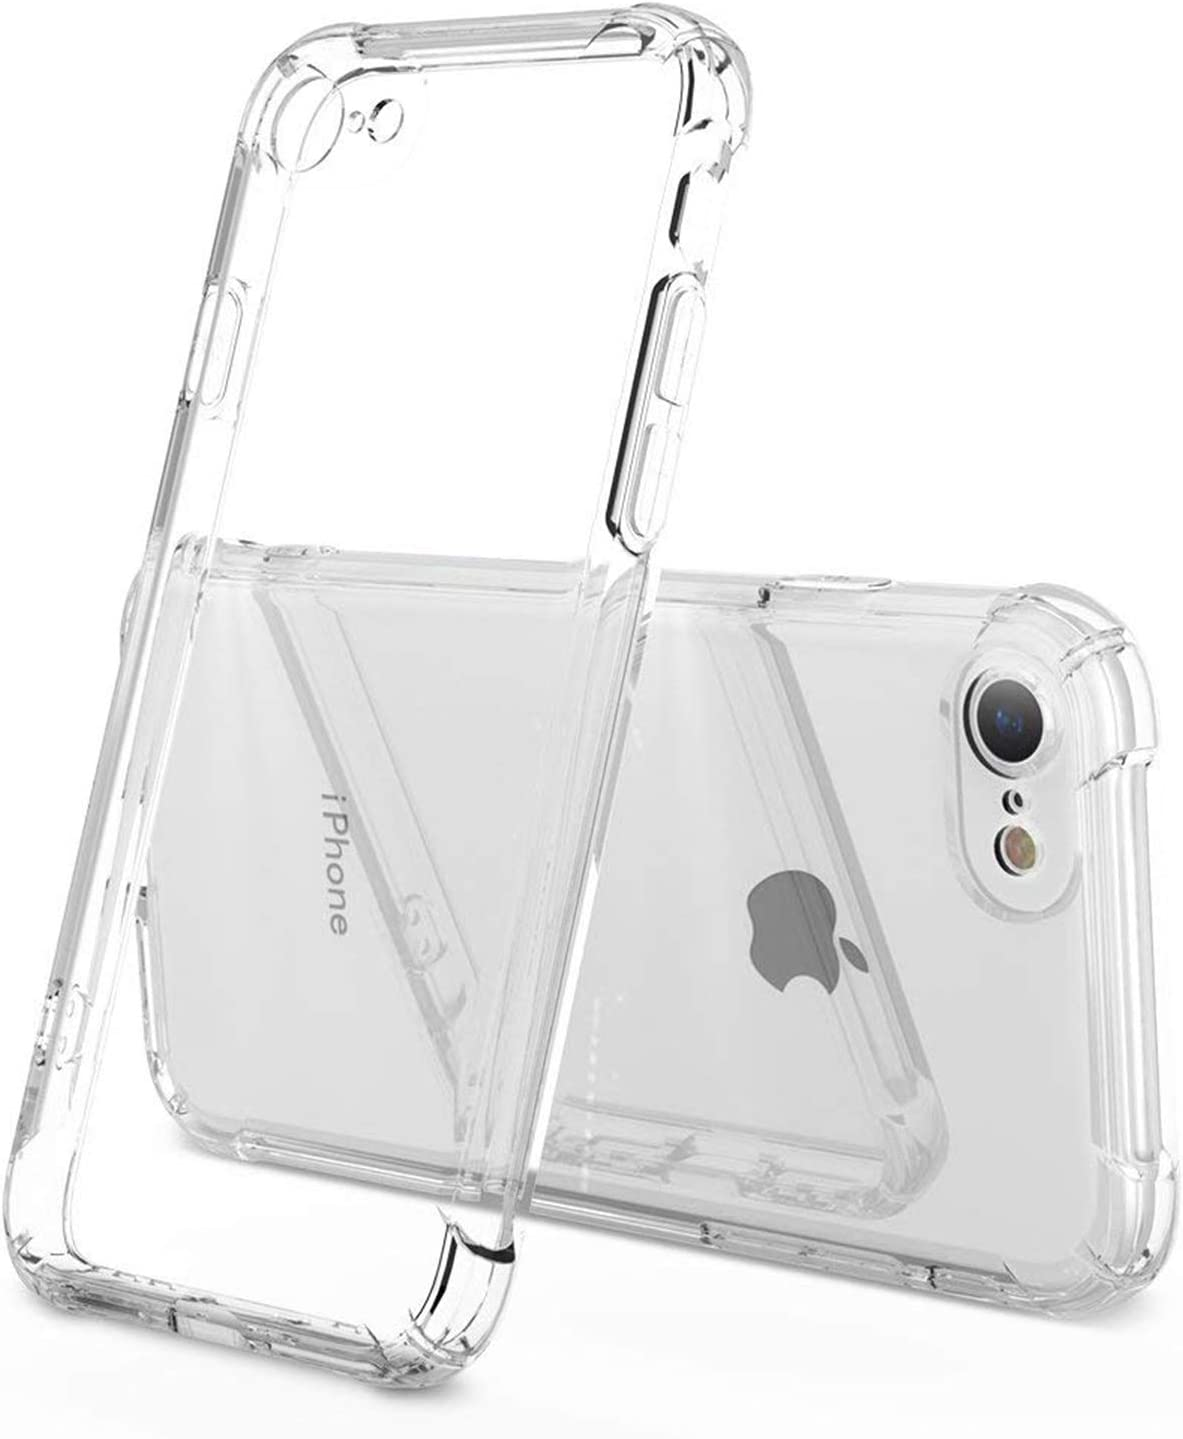 ANHONG iPhone SE2 2020/7 / 8 Case, iPhone SE 2020/7 / 8 Case with Shock Absorption Bumper Protective Heavy Duty Case for iPhone SE2 2020/7 / 8 - Crystal Clear